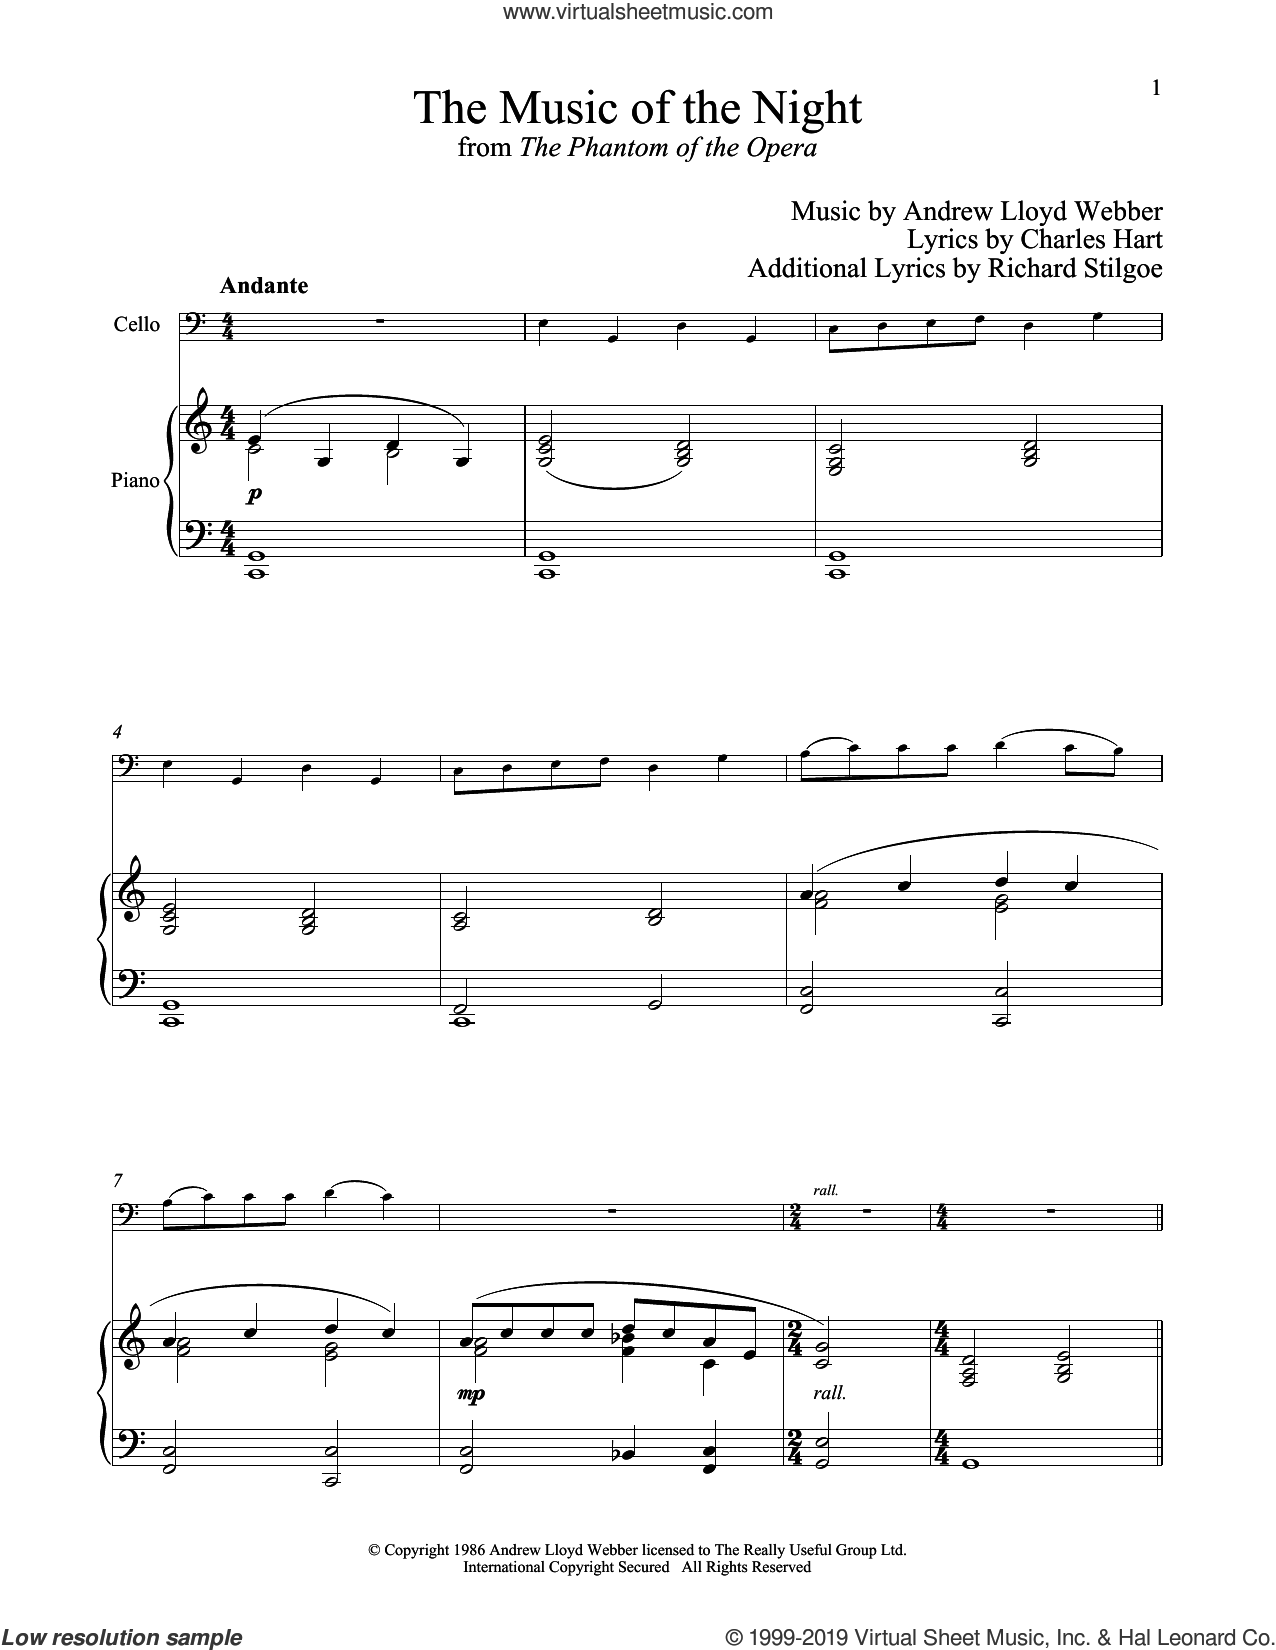 The Music of the Night (from The Phantom of the Opera) sheet music for cello and piano by Andrew Lloyd Webber, Charles Hart and Richard Stilgoe, intermediate skill level